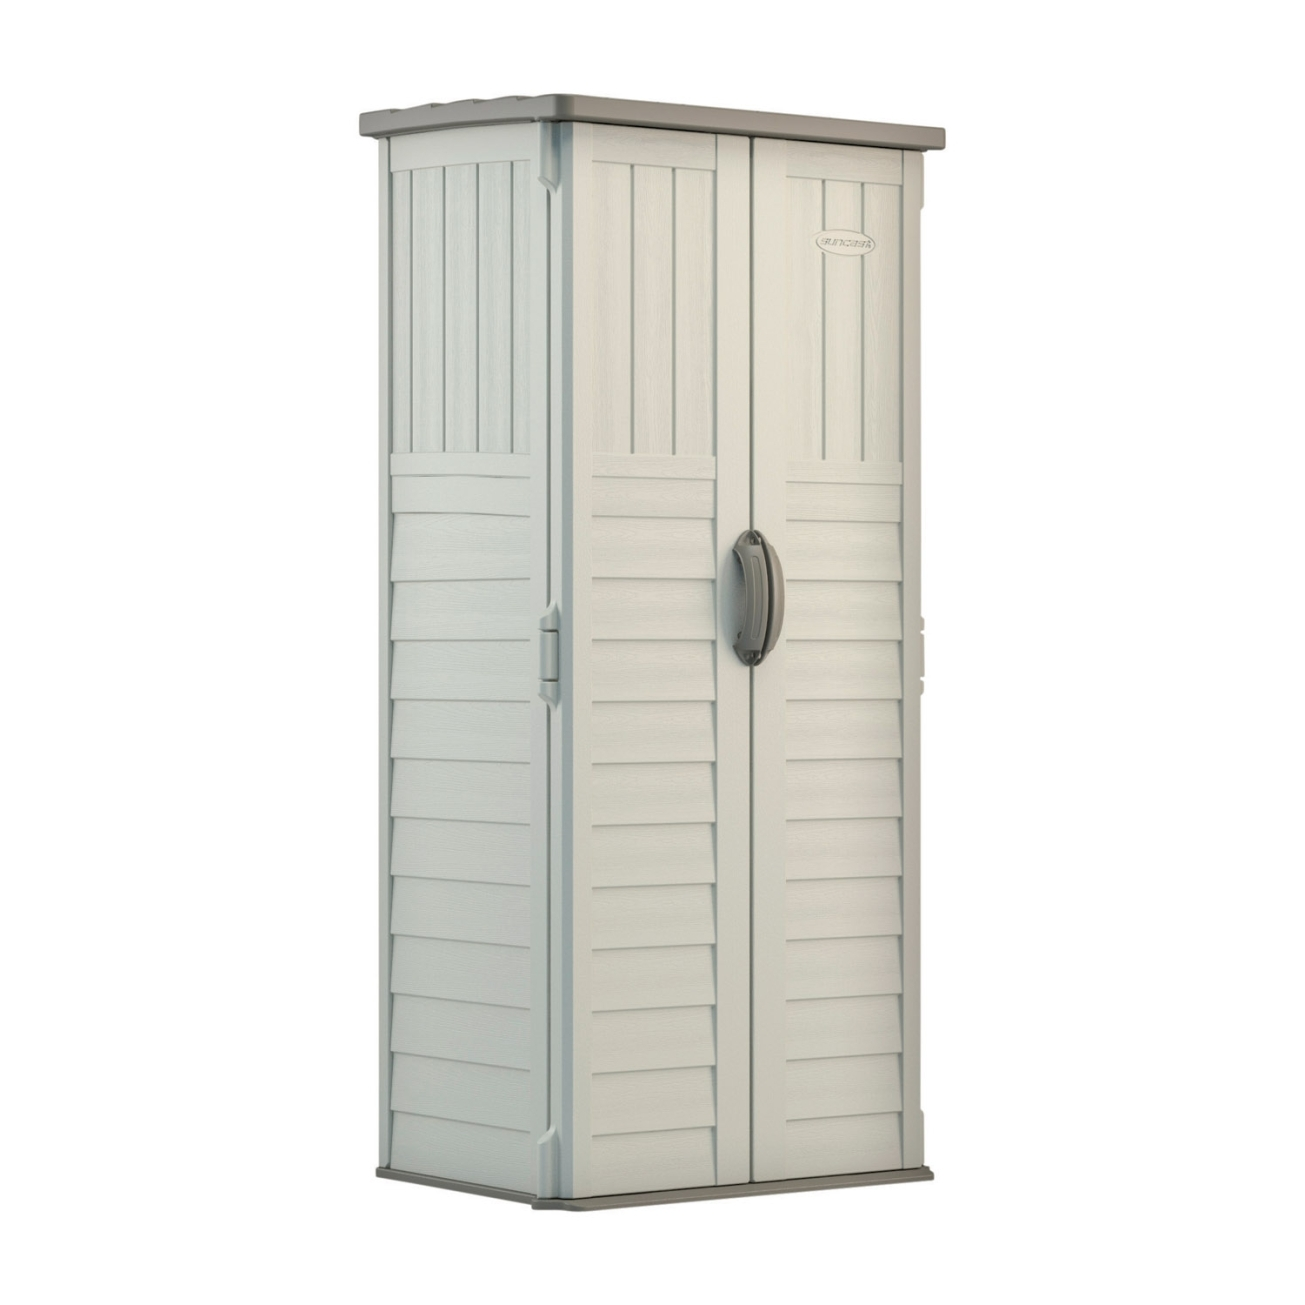 Plastic Storage Cabinets For Outside